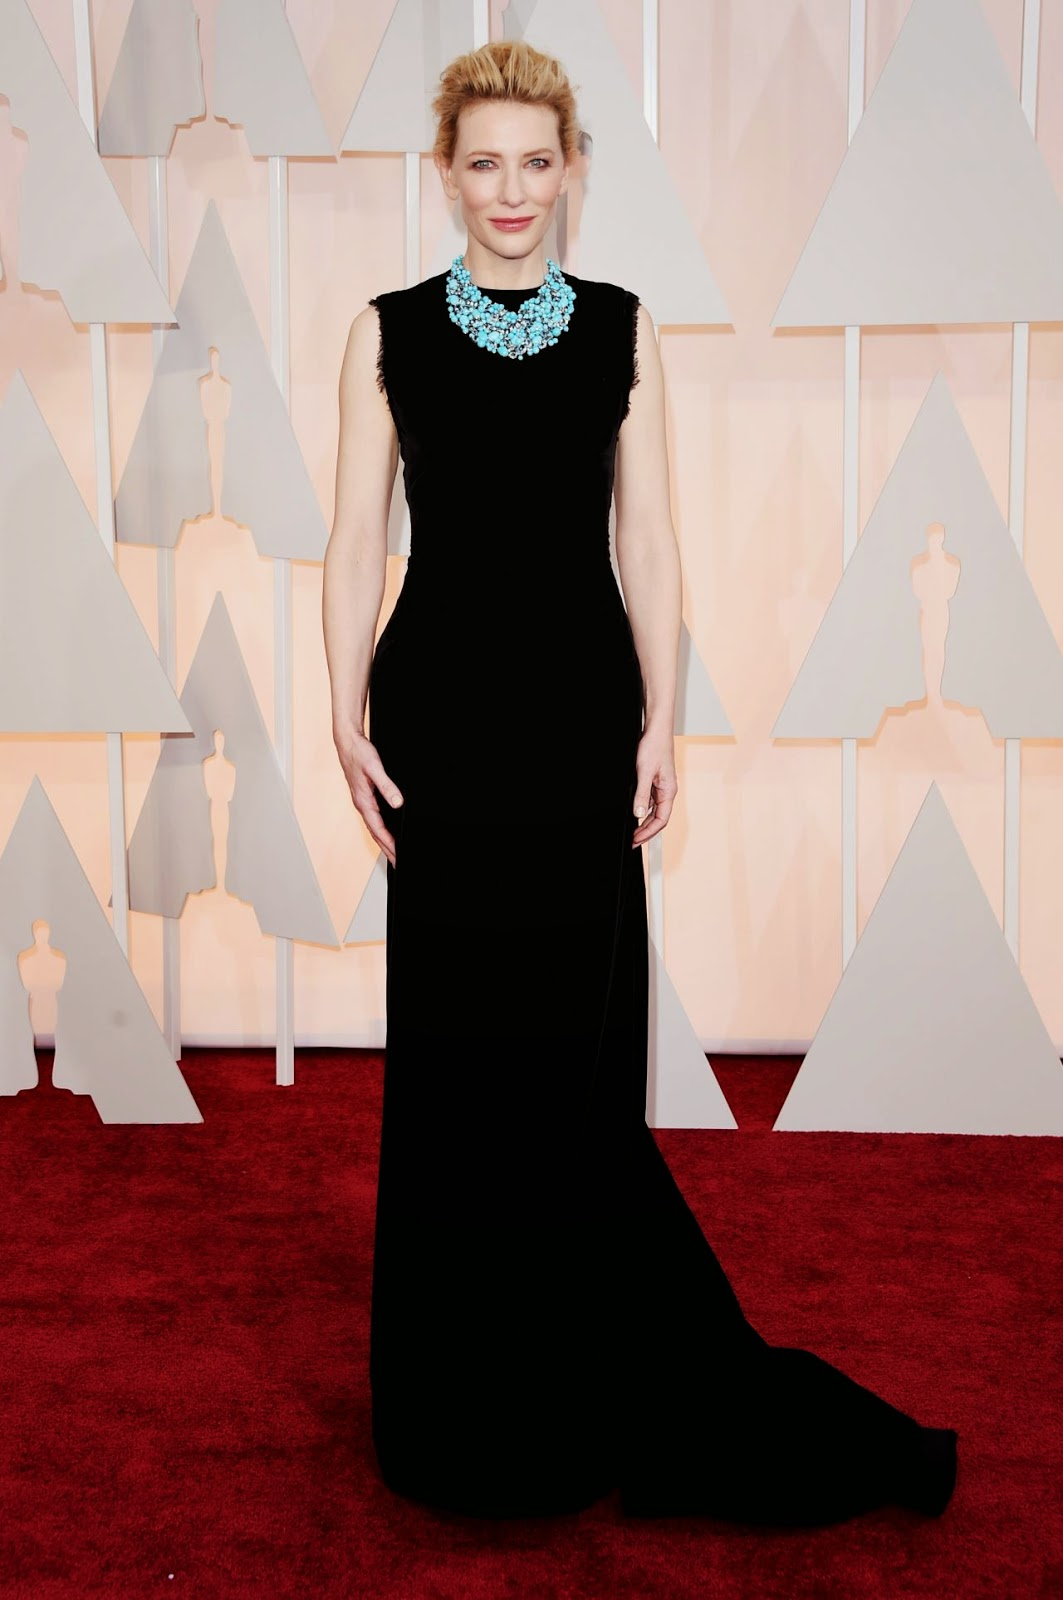 Cate Blanchett pairs black gown with a turquoise necklace at the 2015 Oscars in Hollywood